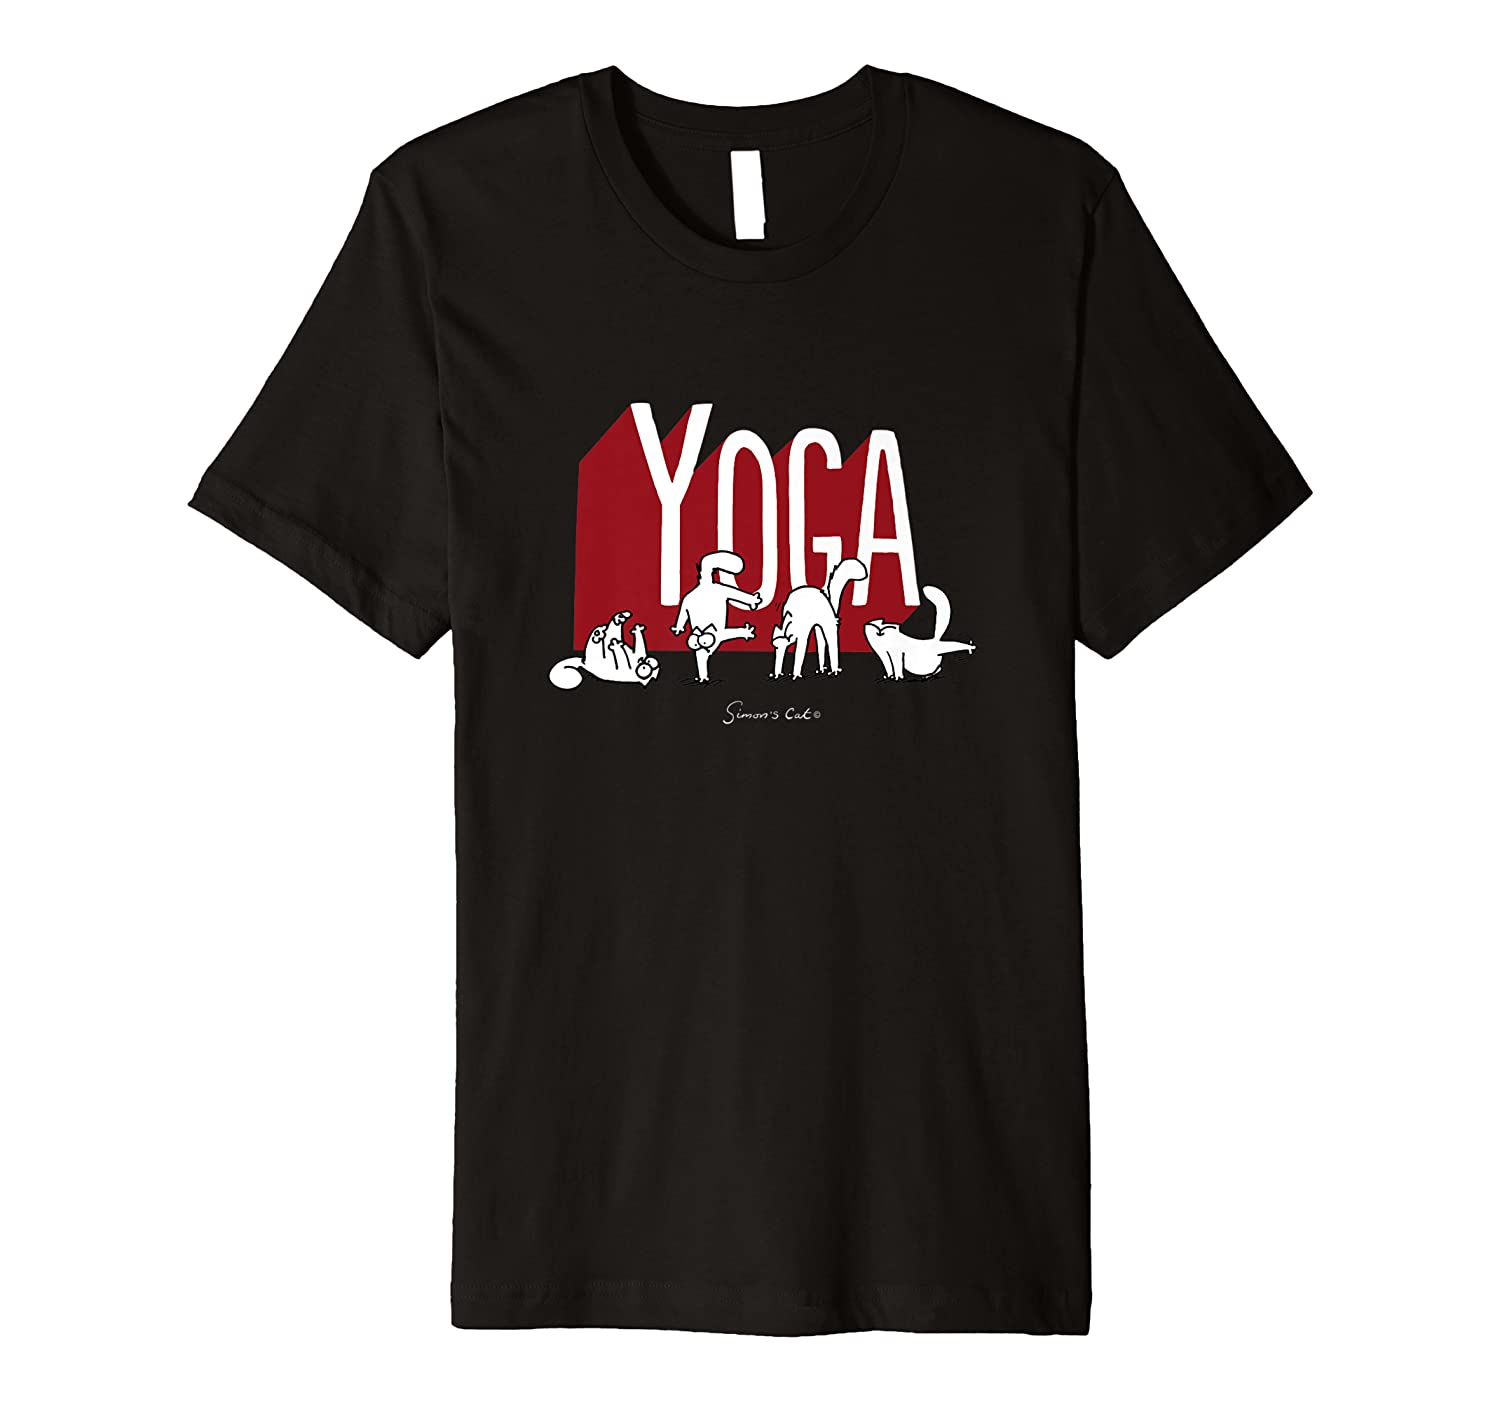 Offizielles Simon's Cat: Yoga T-shirt